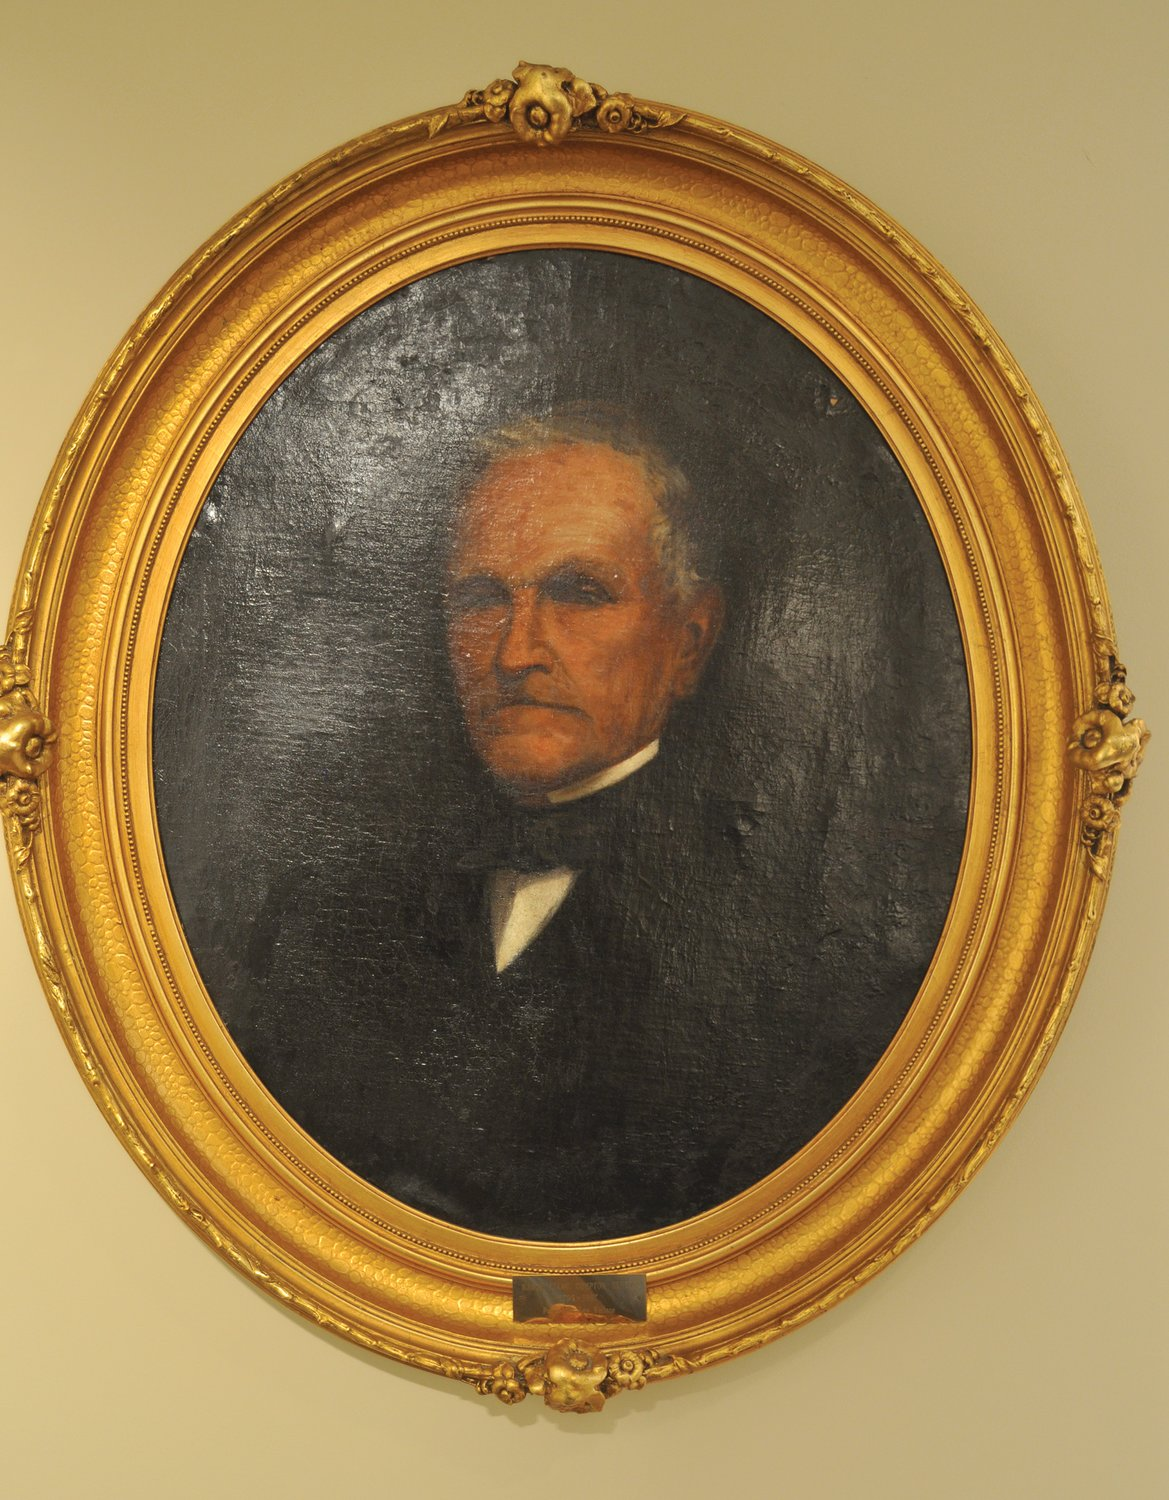 A portrait of Isaac C. Elston Sr., painted by son-in-law Lew Wallace, is believed to be the only painting Wallace signed. The portrait is featured in an upcoming exhibit on Wallace